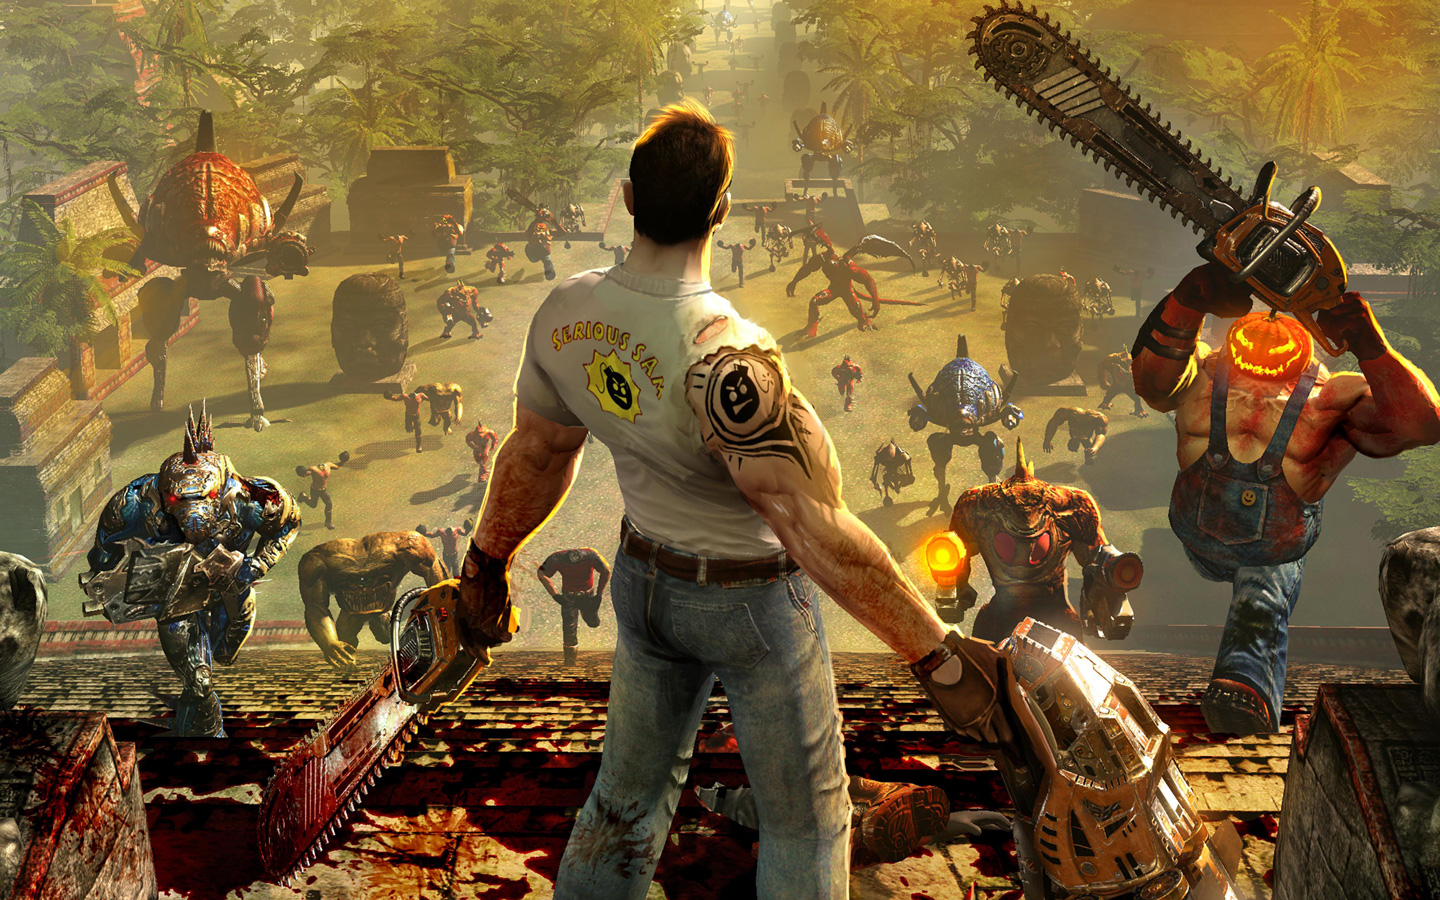 Serious Sam HD: The Second Encounter Wallpaper in 1440x900